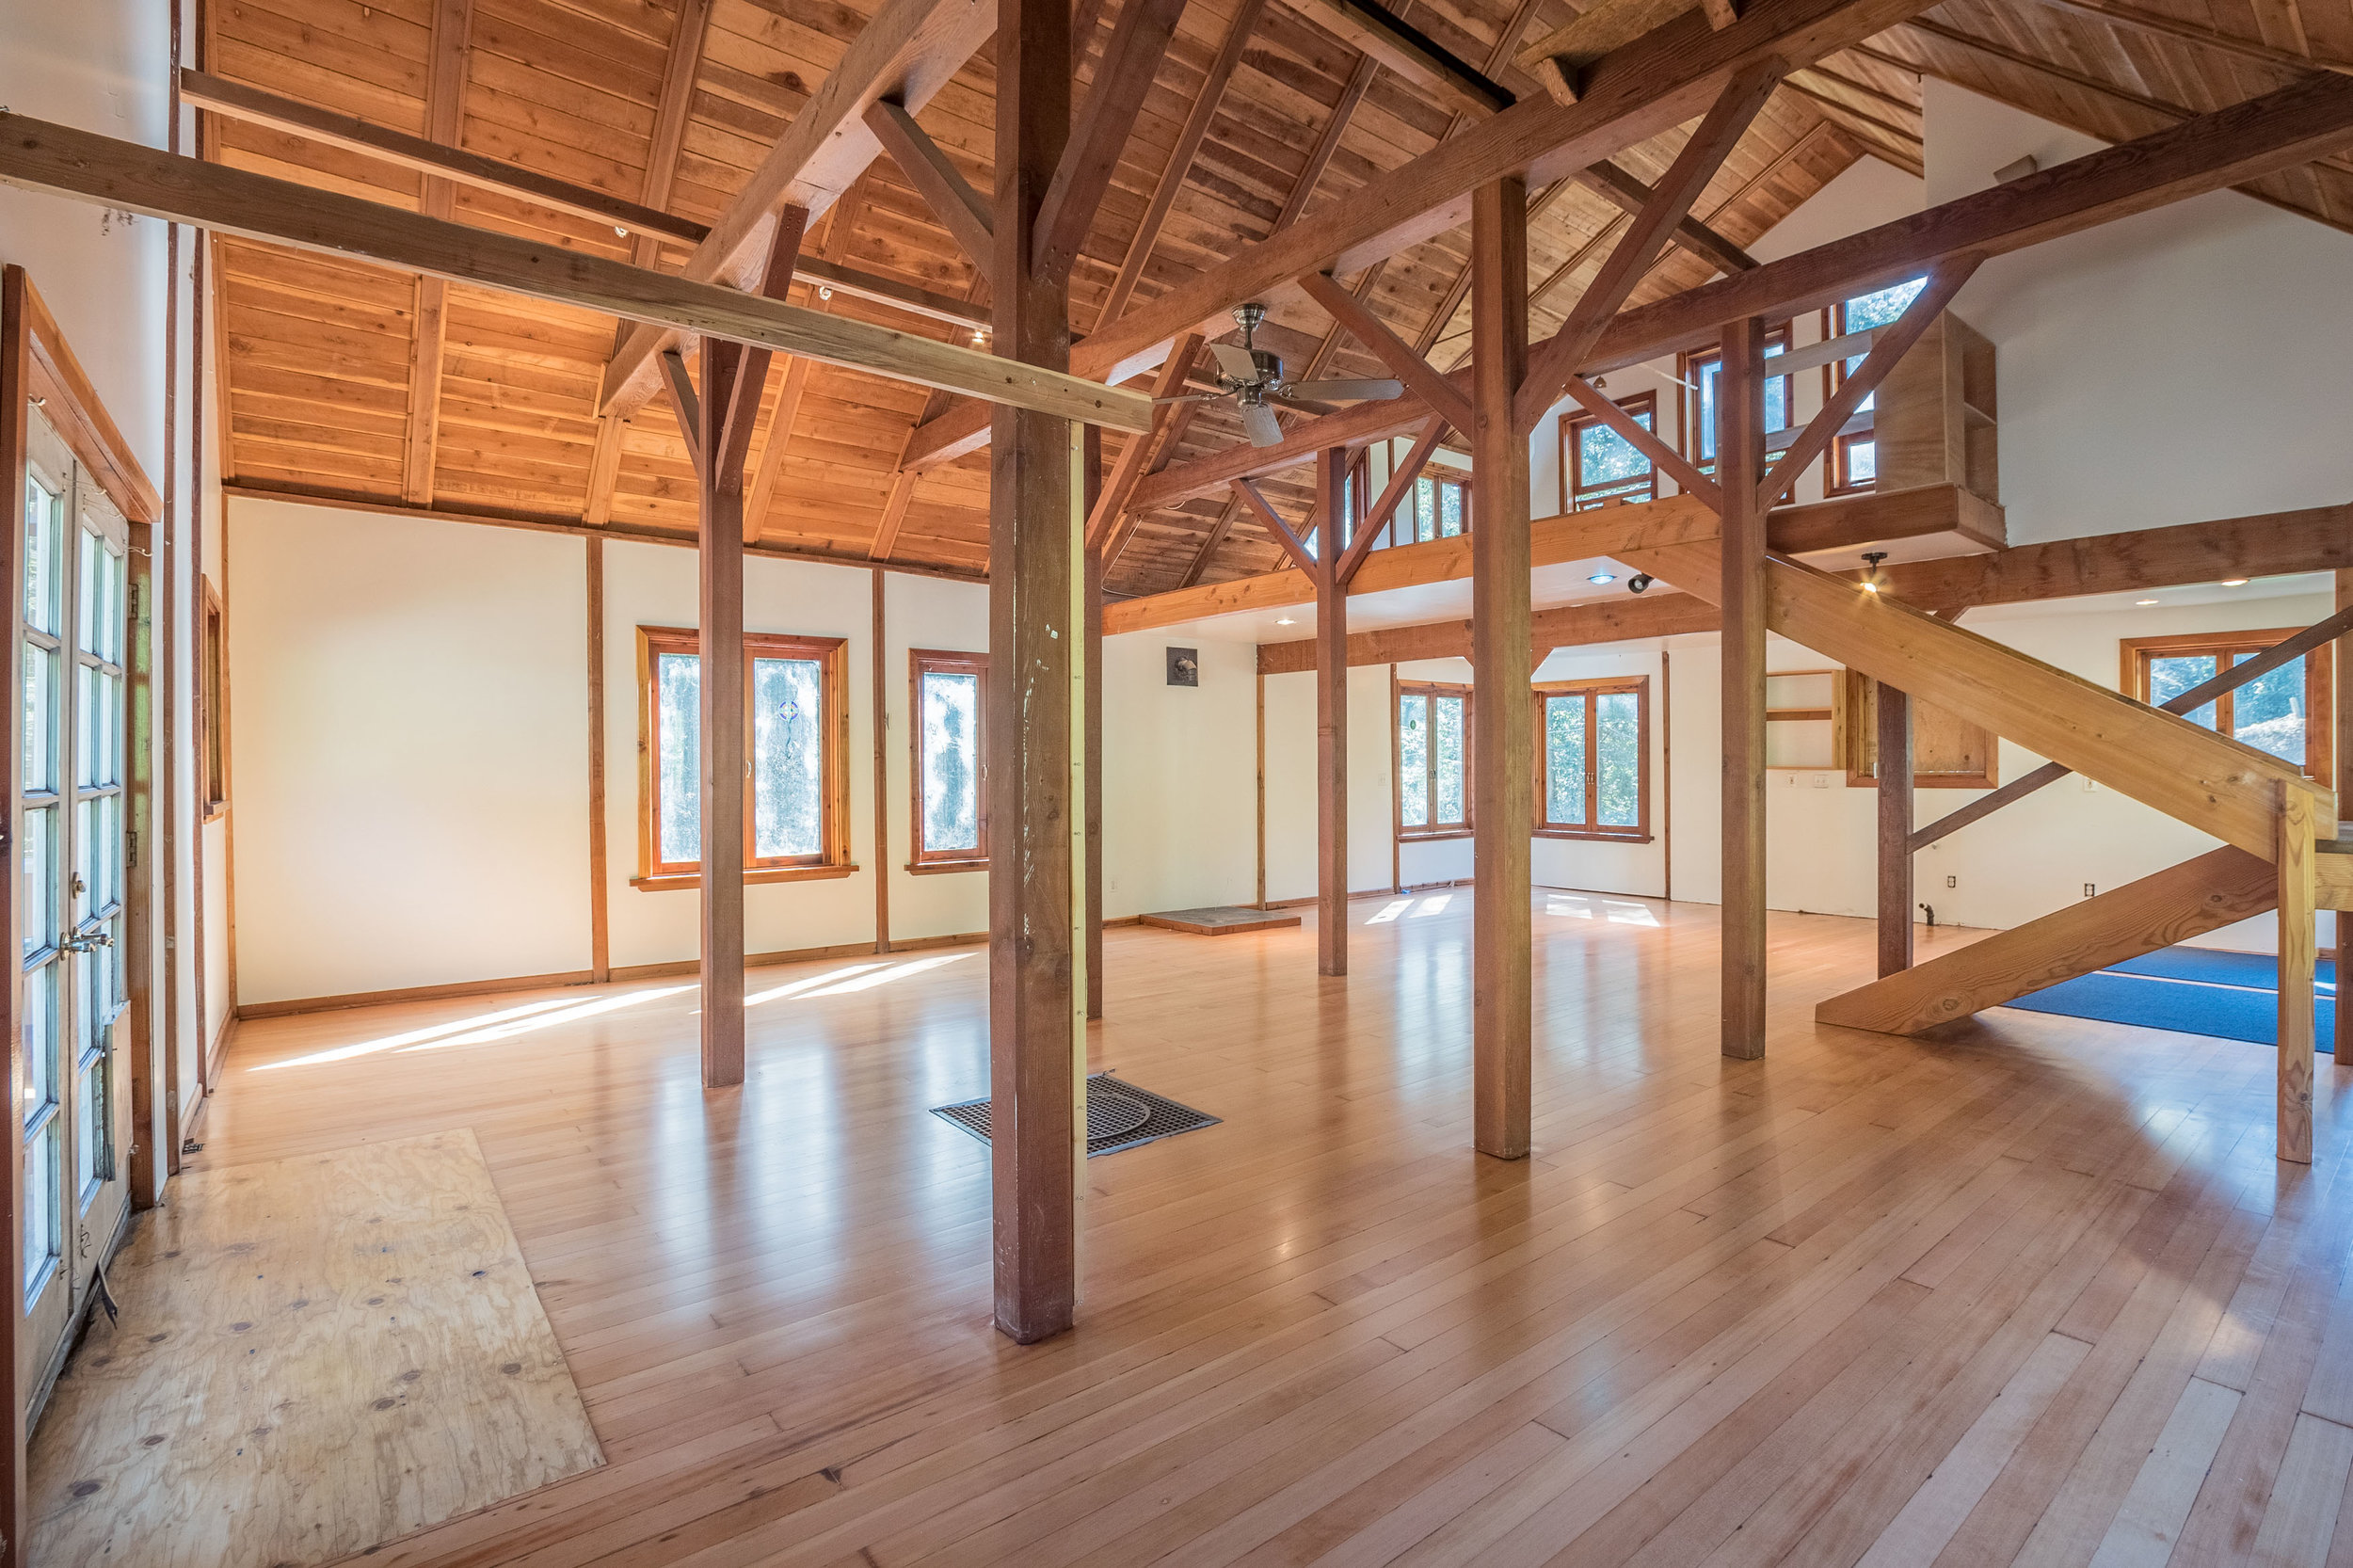 Private and Tranquil Property in Aptos, California